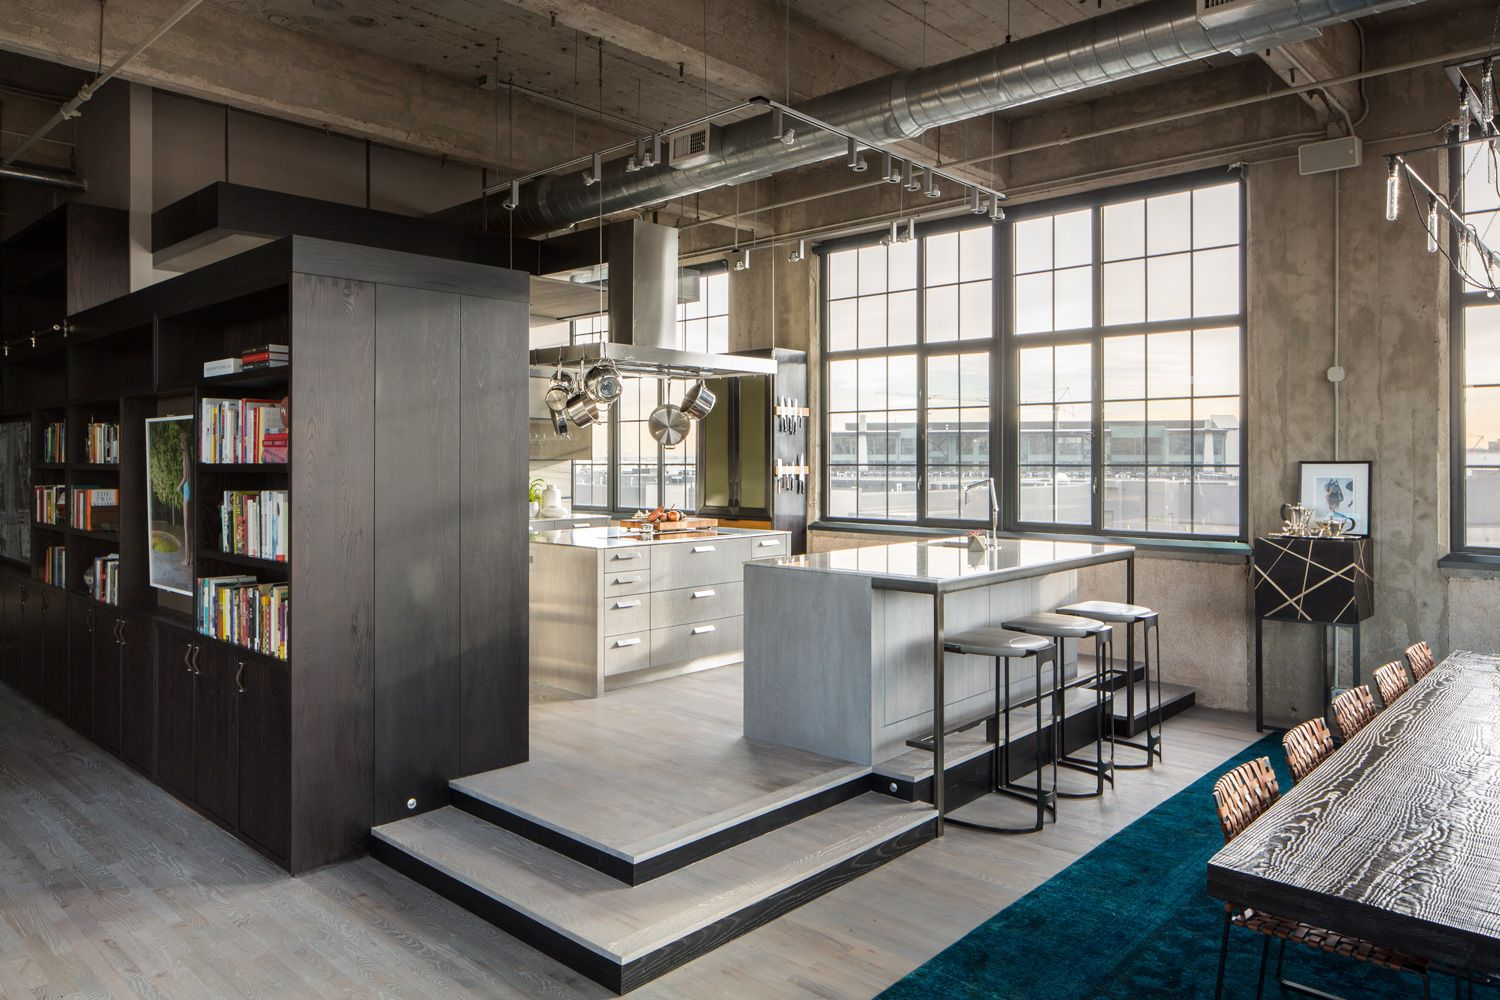 A historic building in Denver houses this modern loft